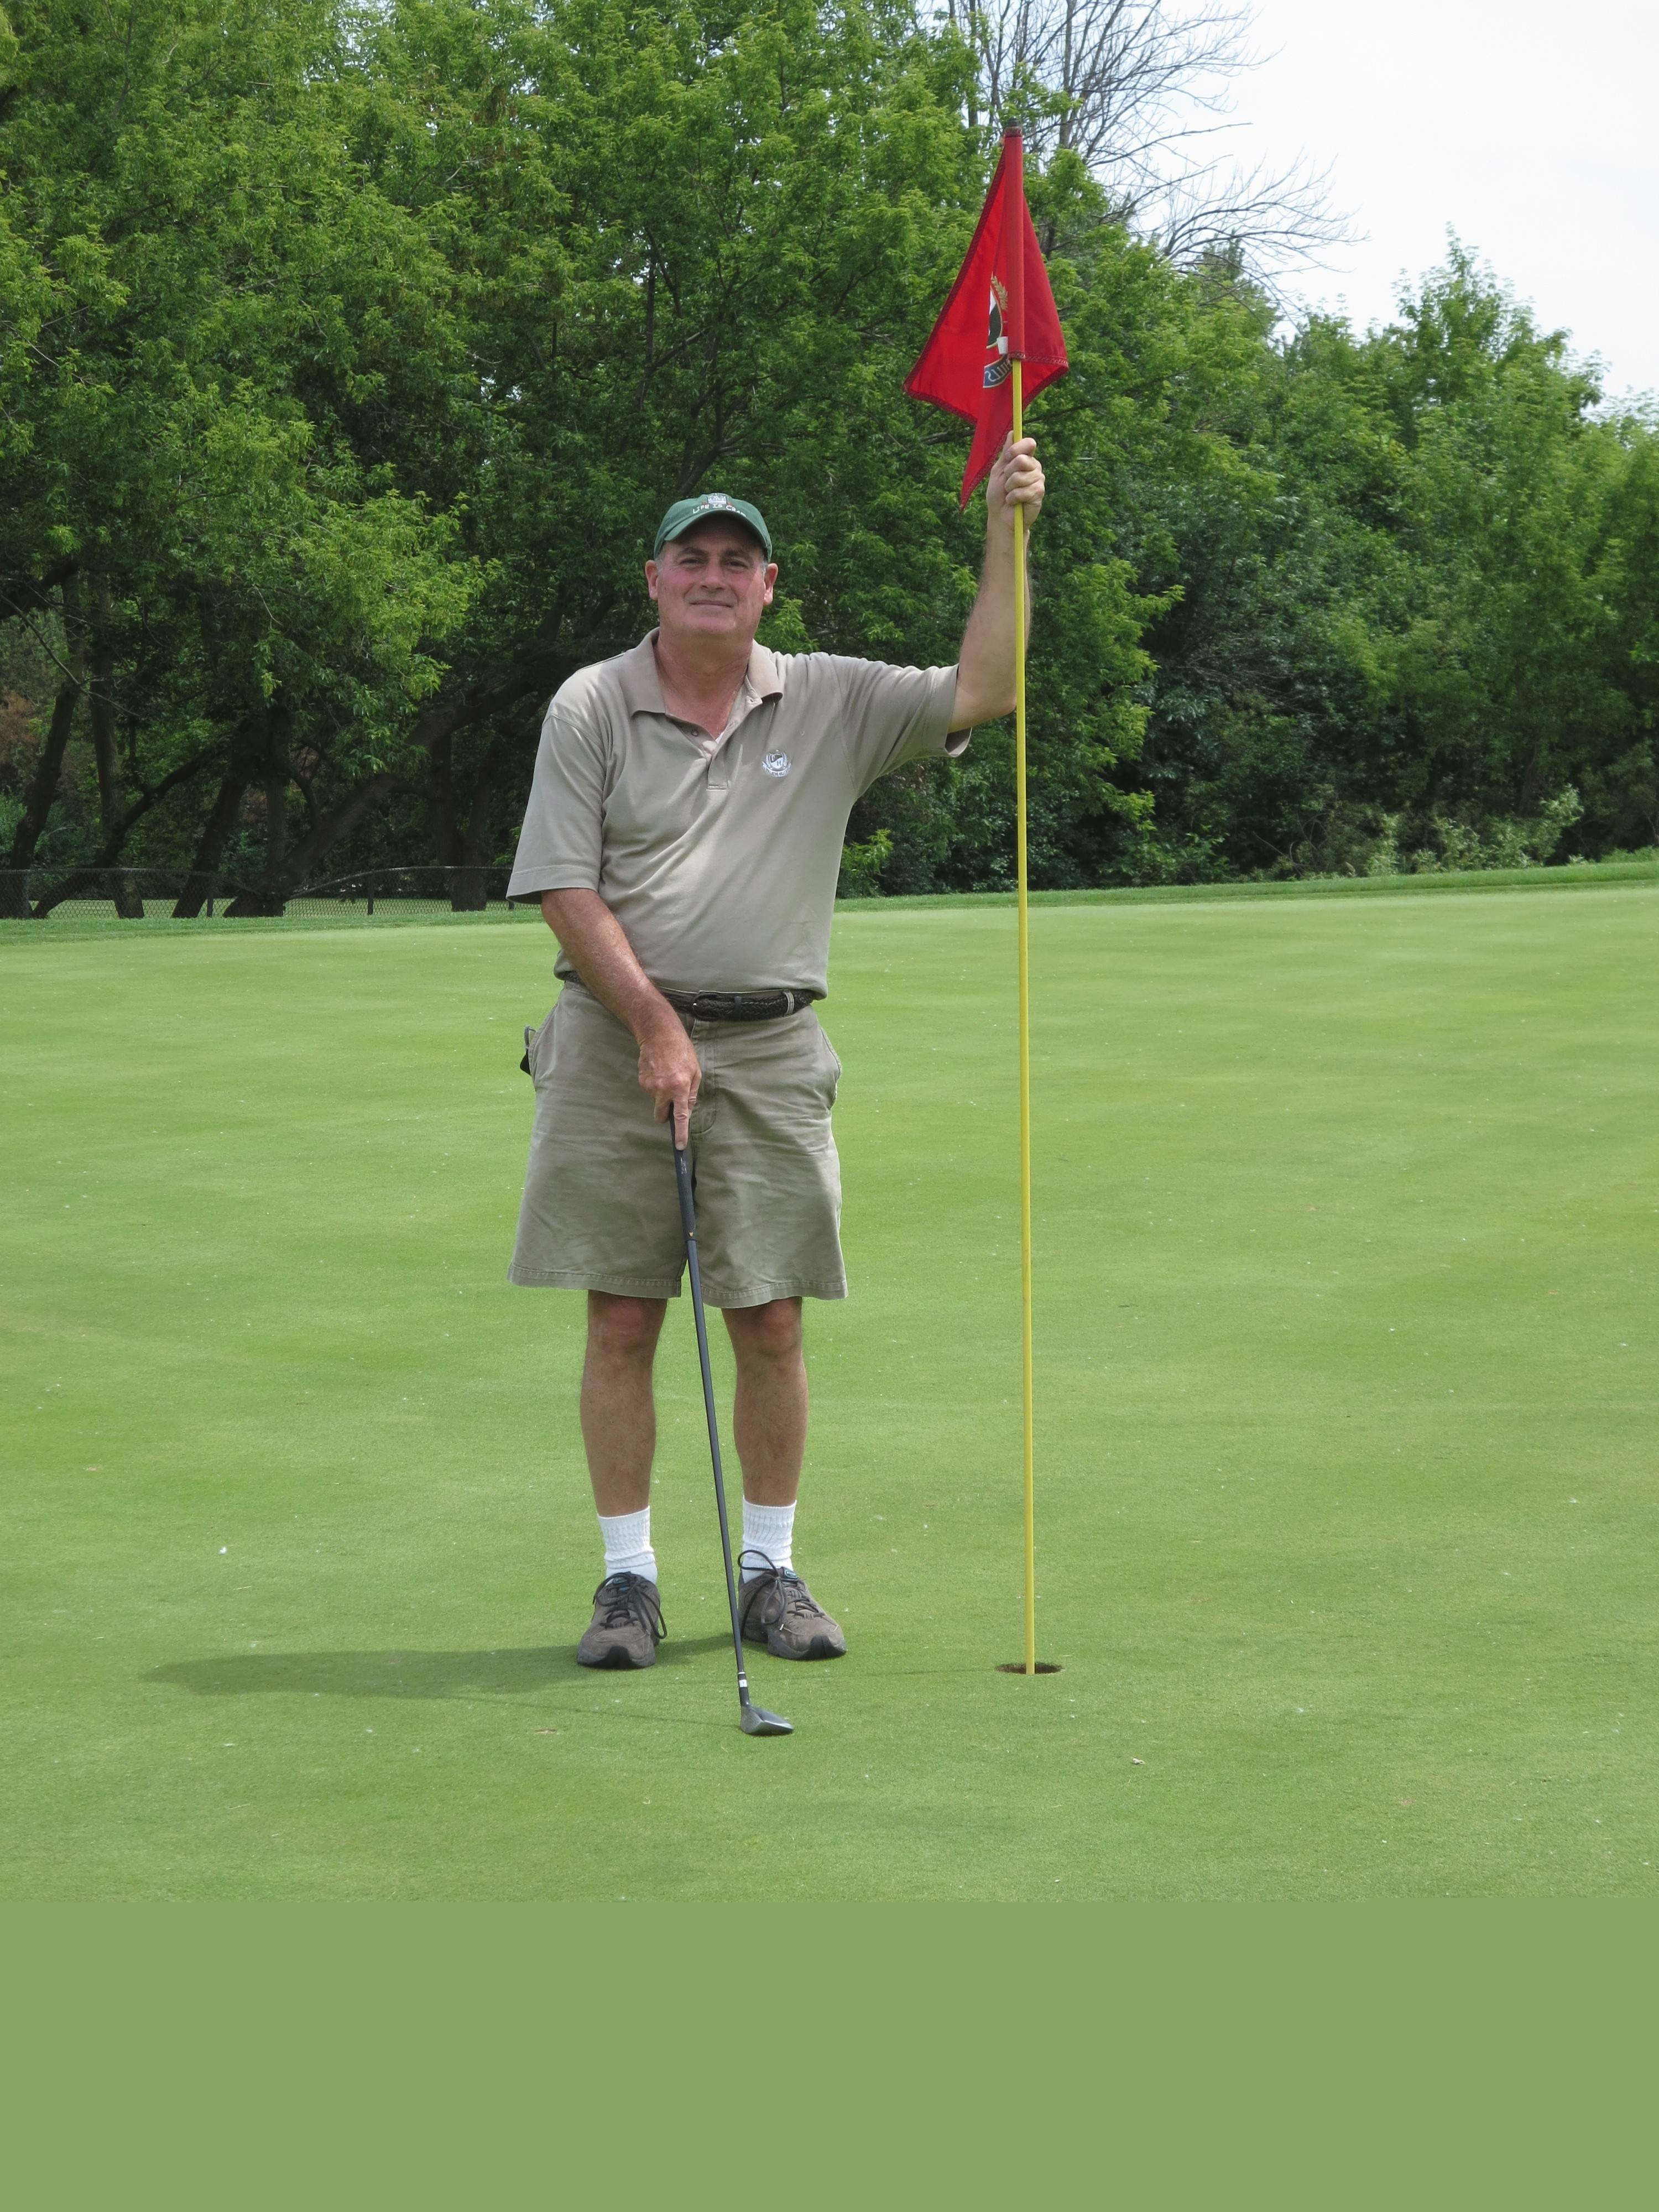 Joe Saccomanno aced hole No. 13 recently at Palatine Hills Golf Course.